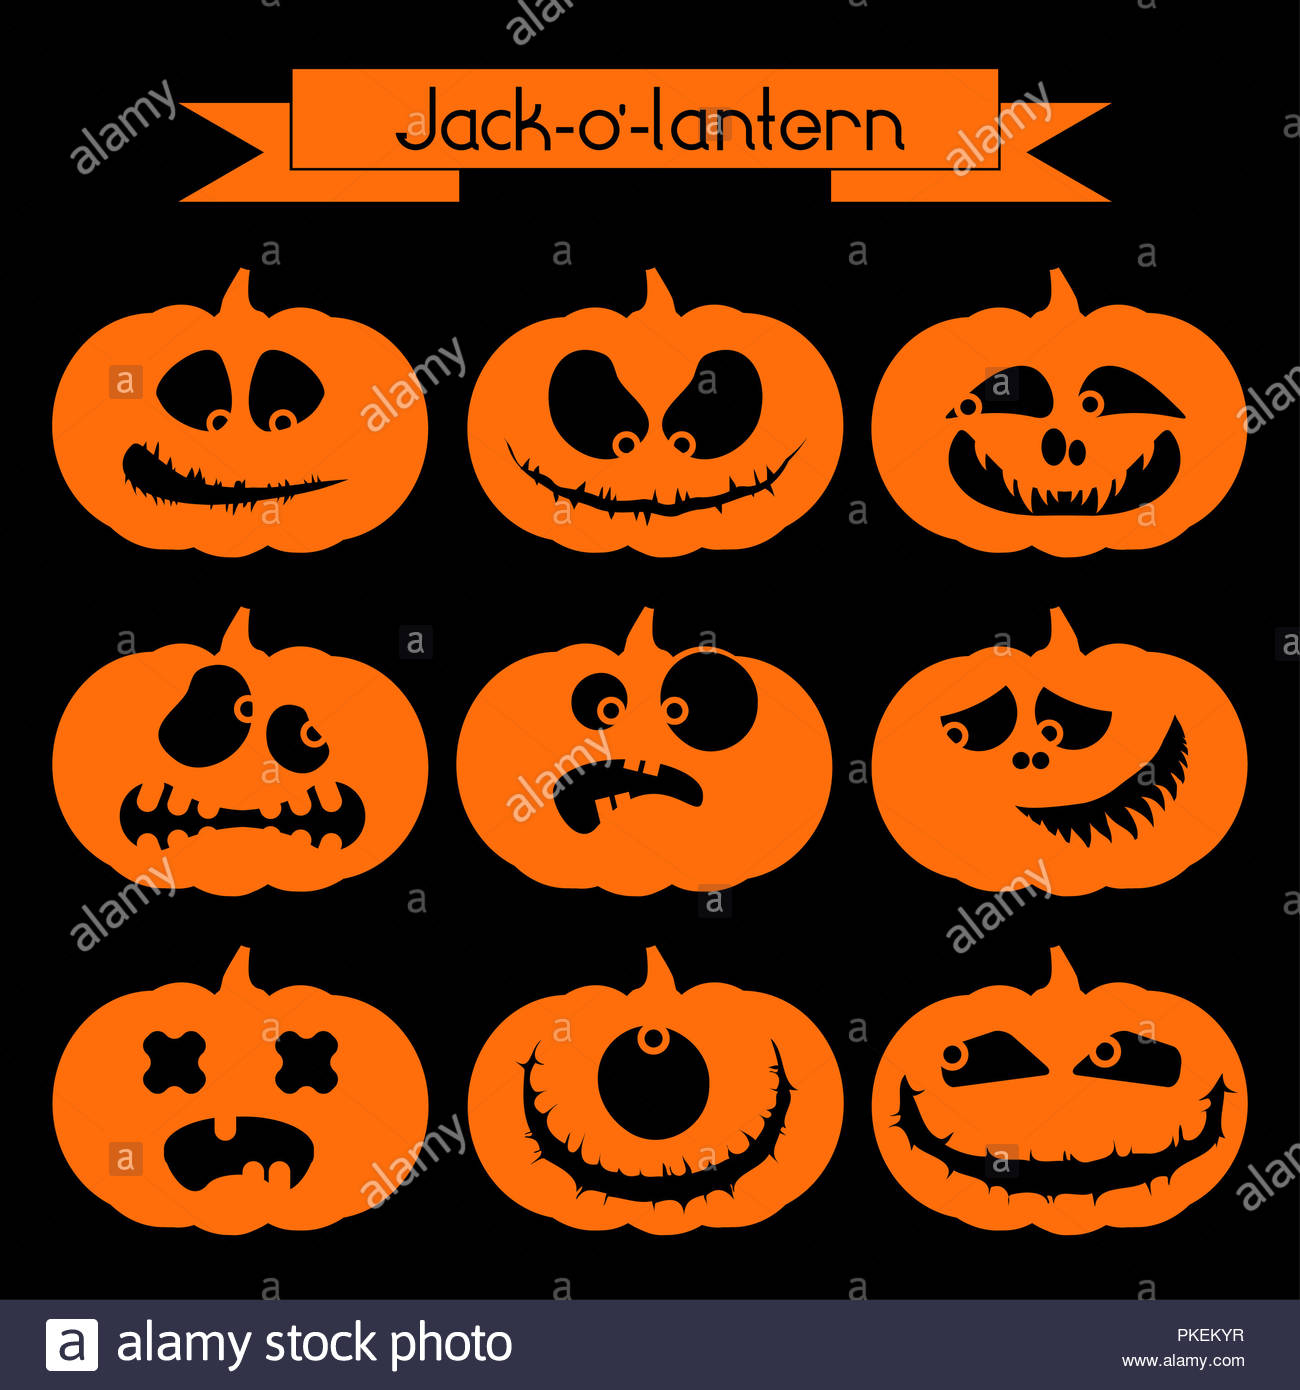 halloween pumpkin with scary faces stock photo: 218525883 - alamy